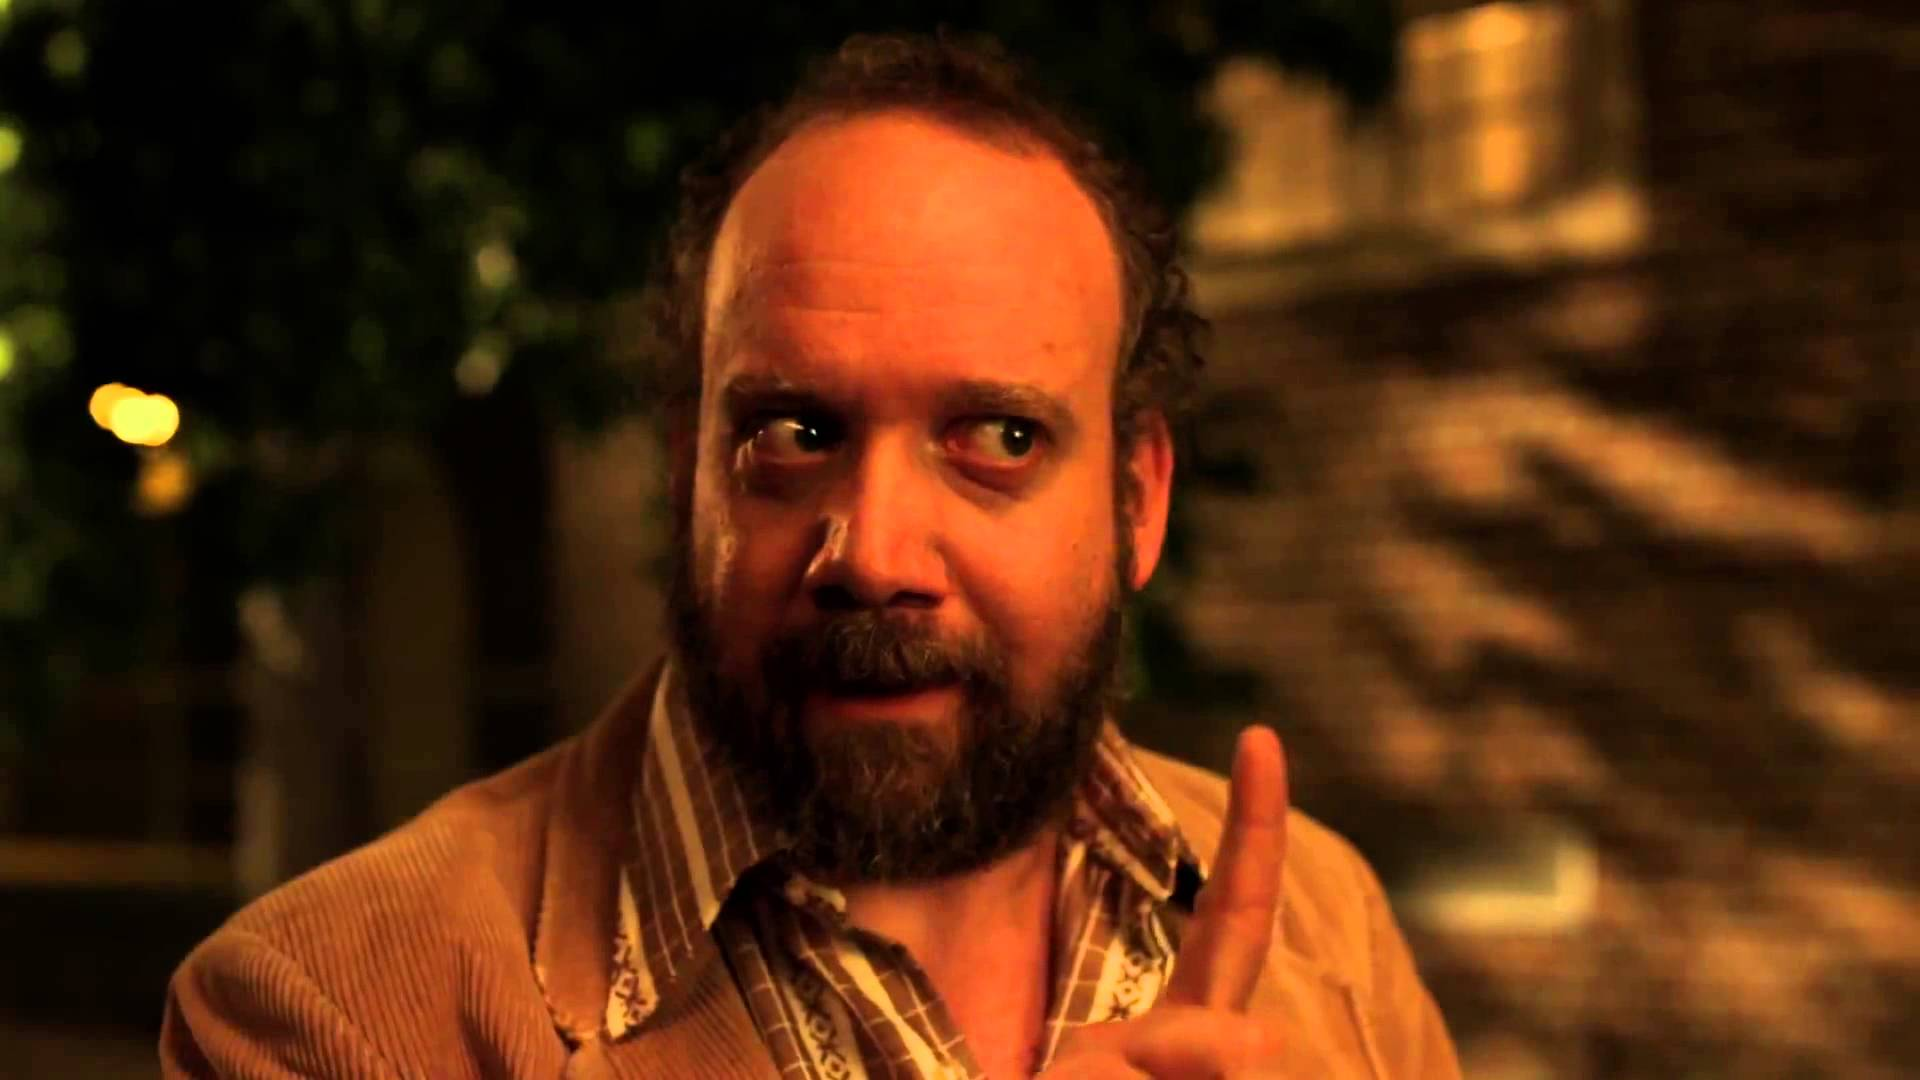 PAUL GIAMATTI TO RETIRE FROM THE MUSIC INDUSTRY